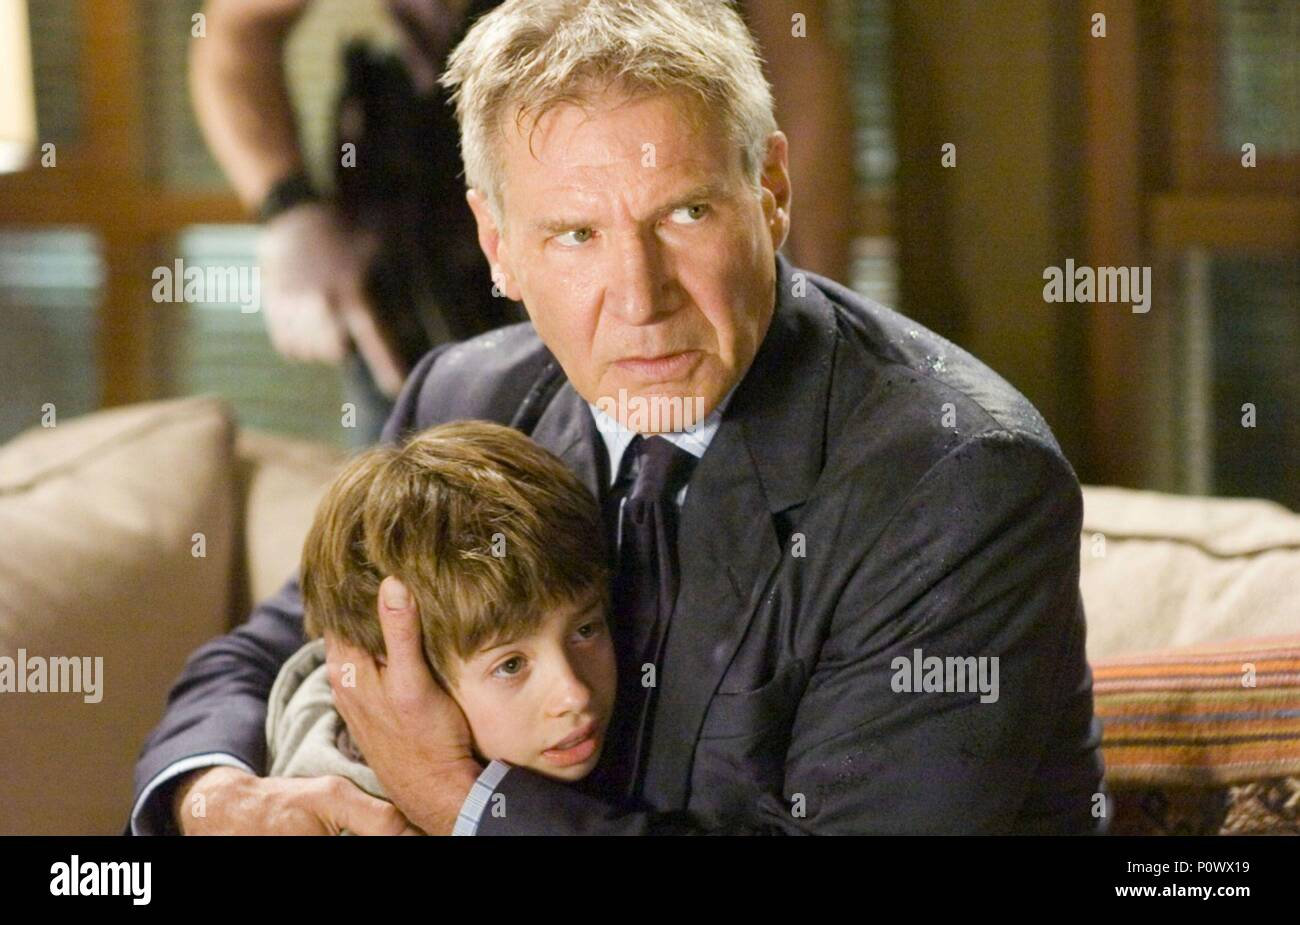 Harrison Ford And Son Stock Photos & Harrison Ford And Son